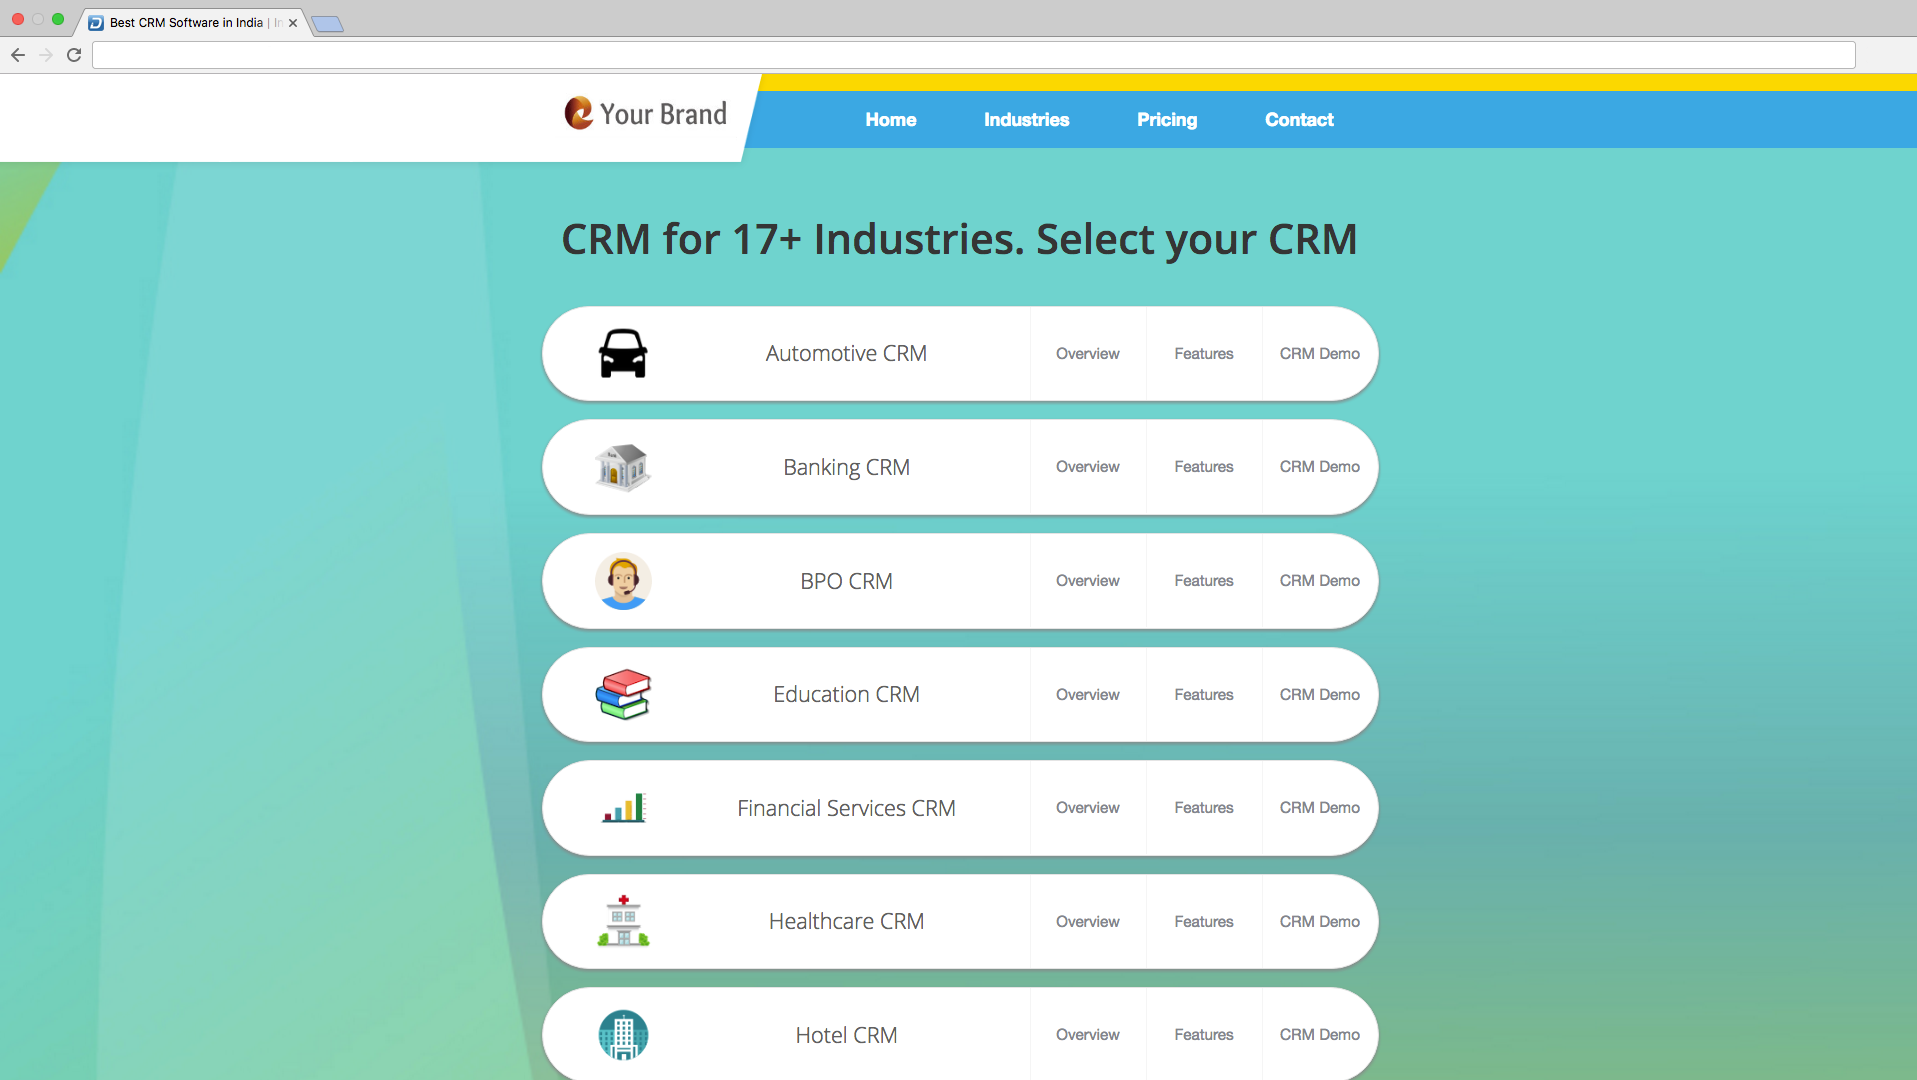 Resell 16 CRM softwares | India | Sep 2019 | Dquip